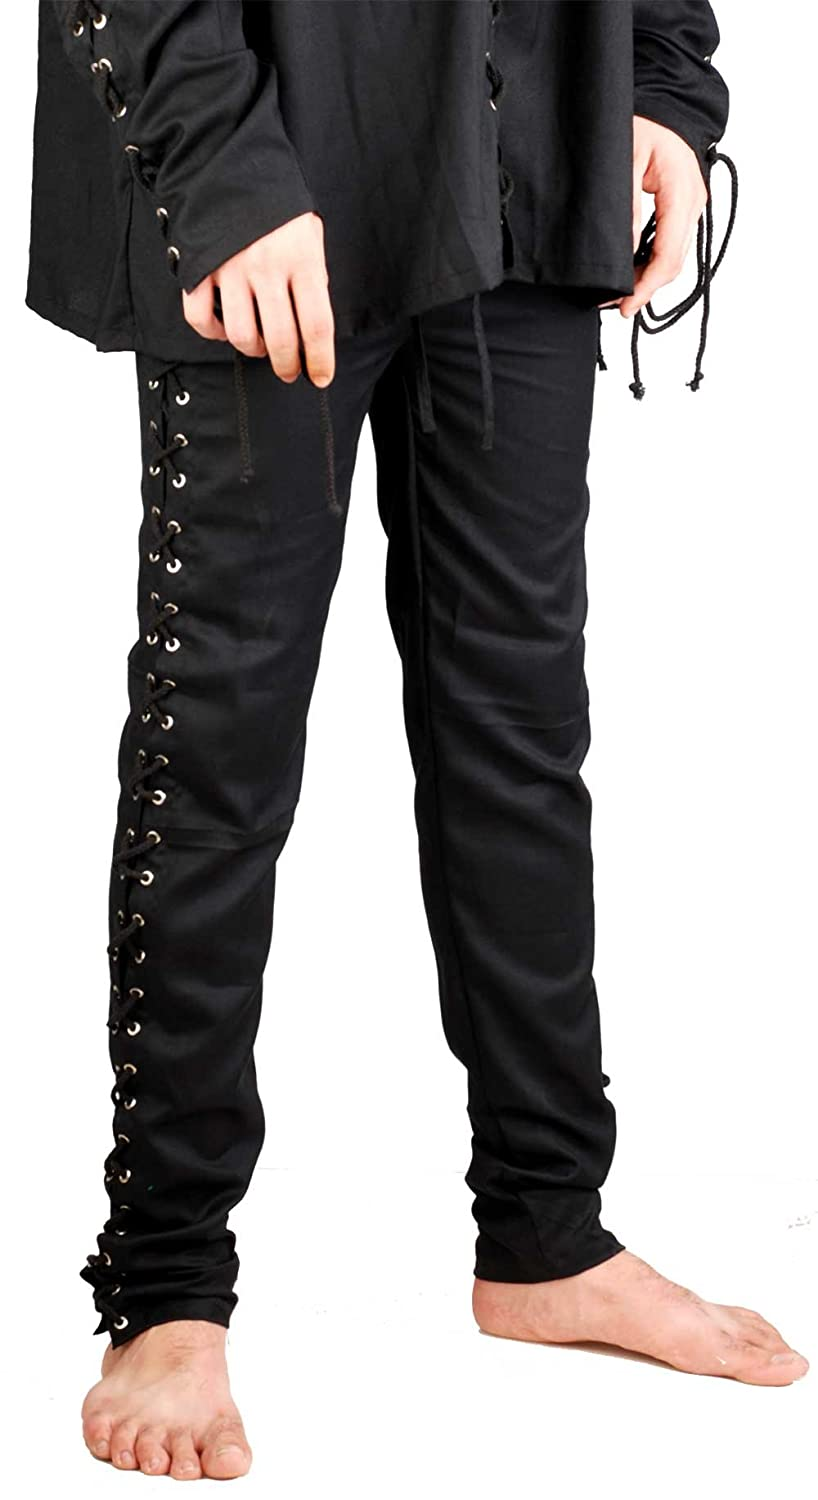 Deluxe Adult Costumes - Men's Medieval tight fitting black lace-up leg pirate pants